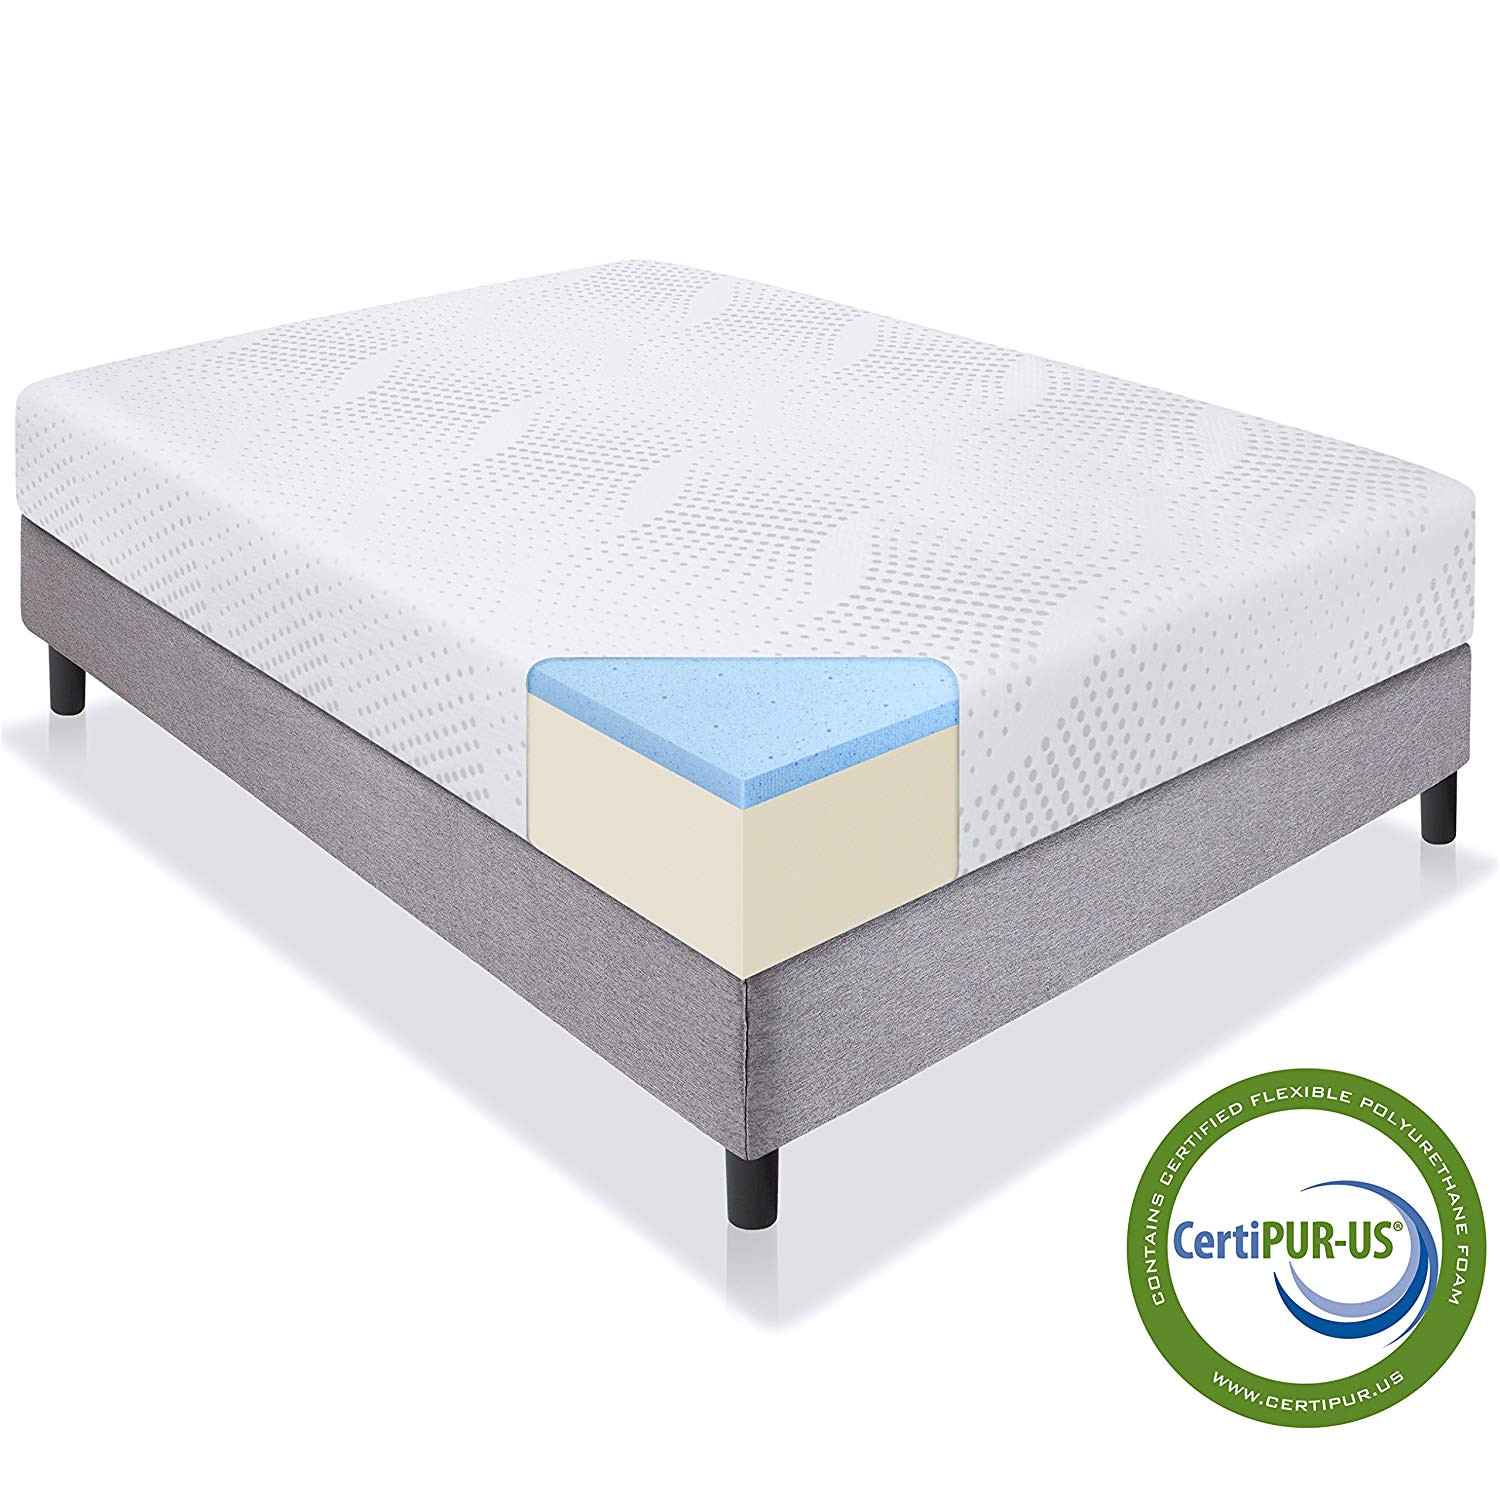 amazon com best choice products 10in queen size dual layered gel memory foam mattress w certipur us certified foam home kitchen